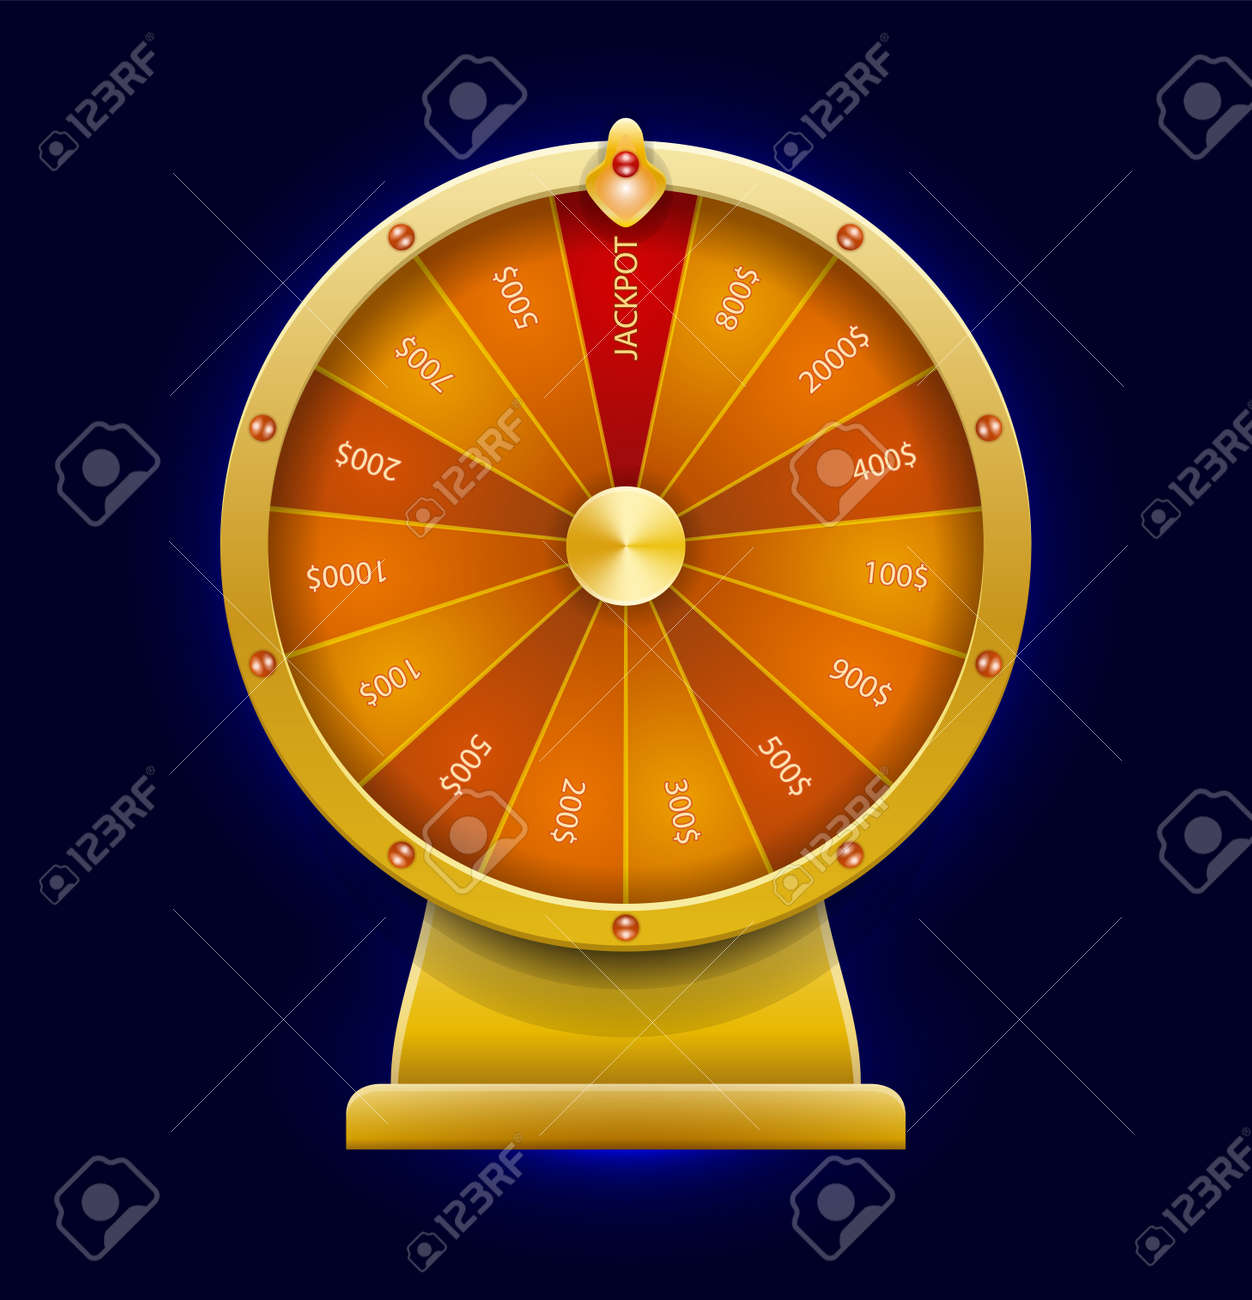 Spinning Wheel Of Fortune Money Win Casino Game 3d Realistic